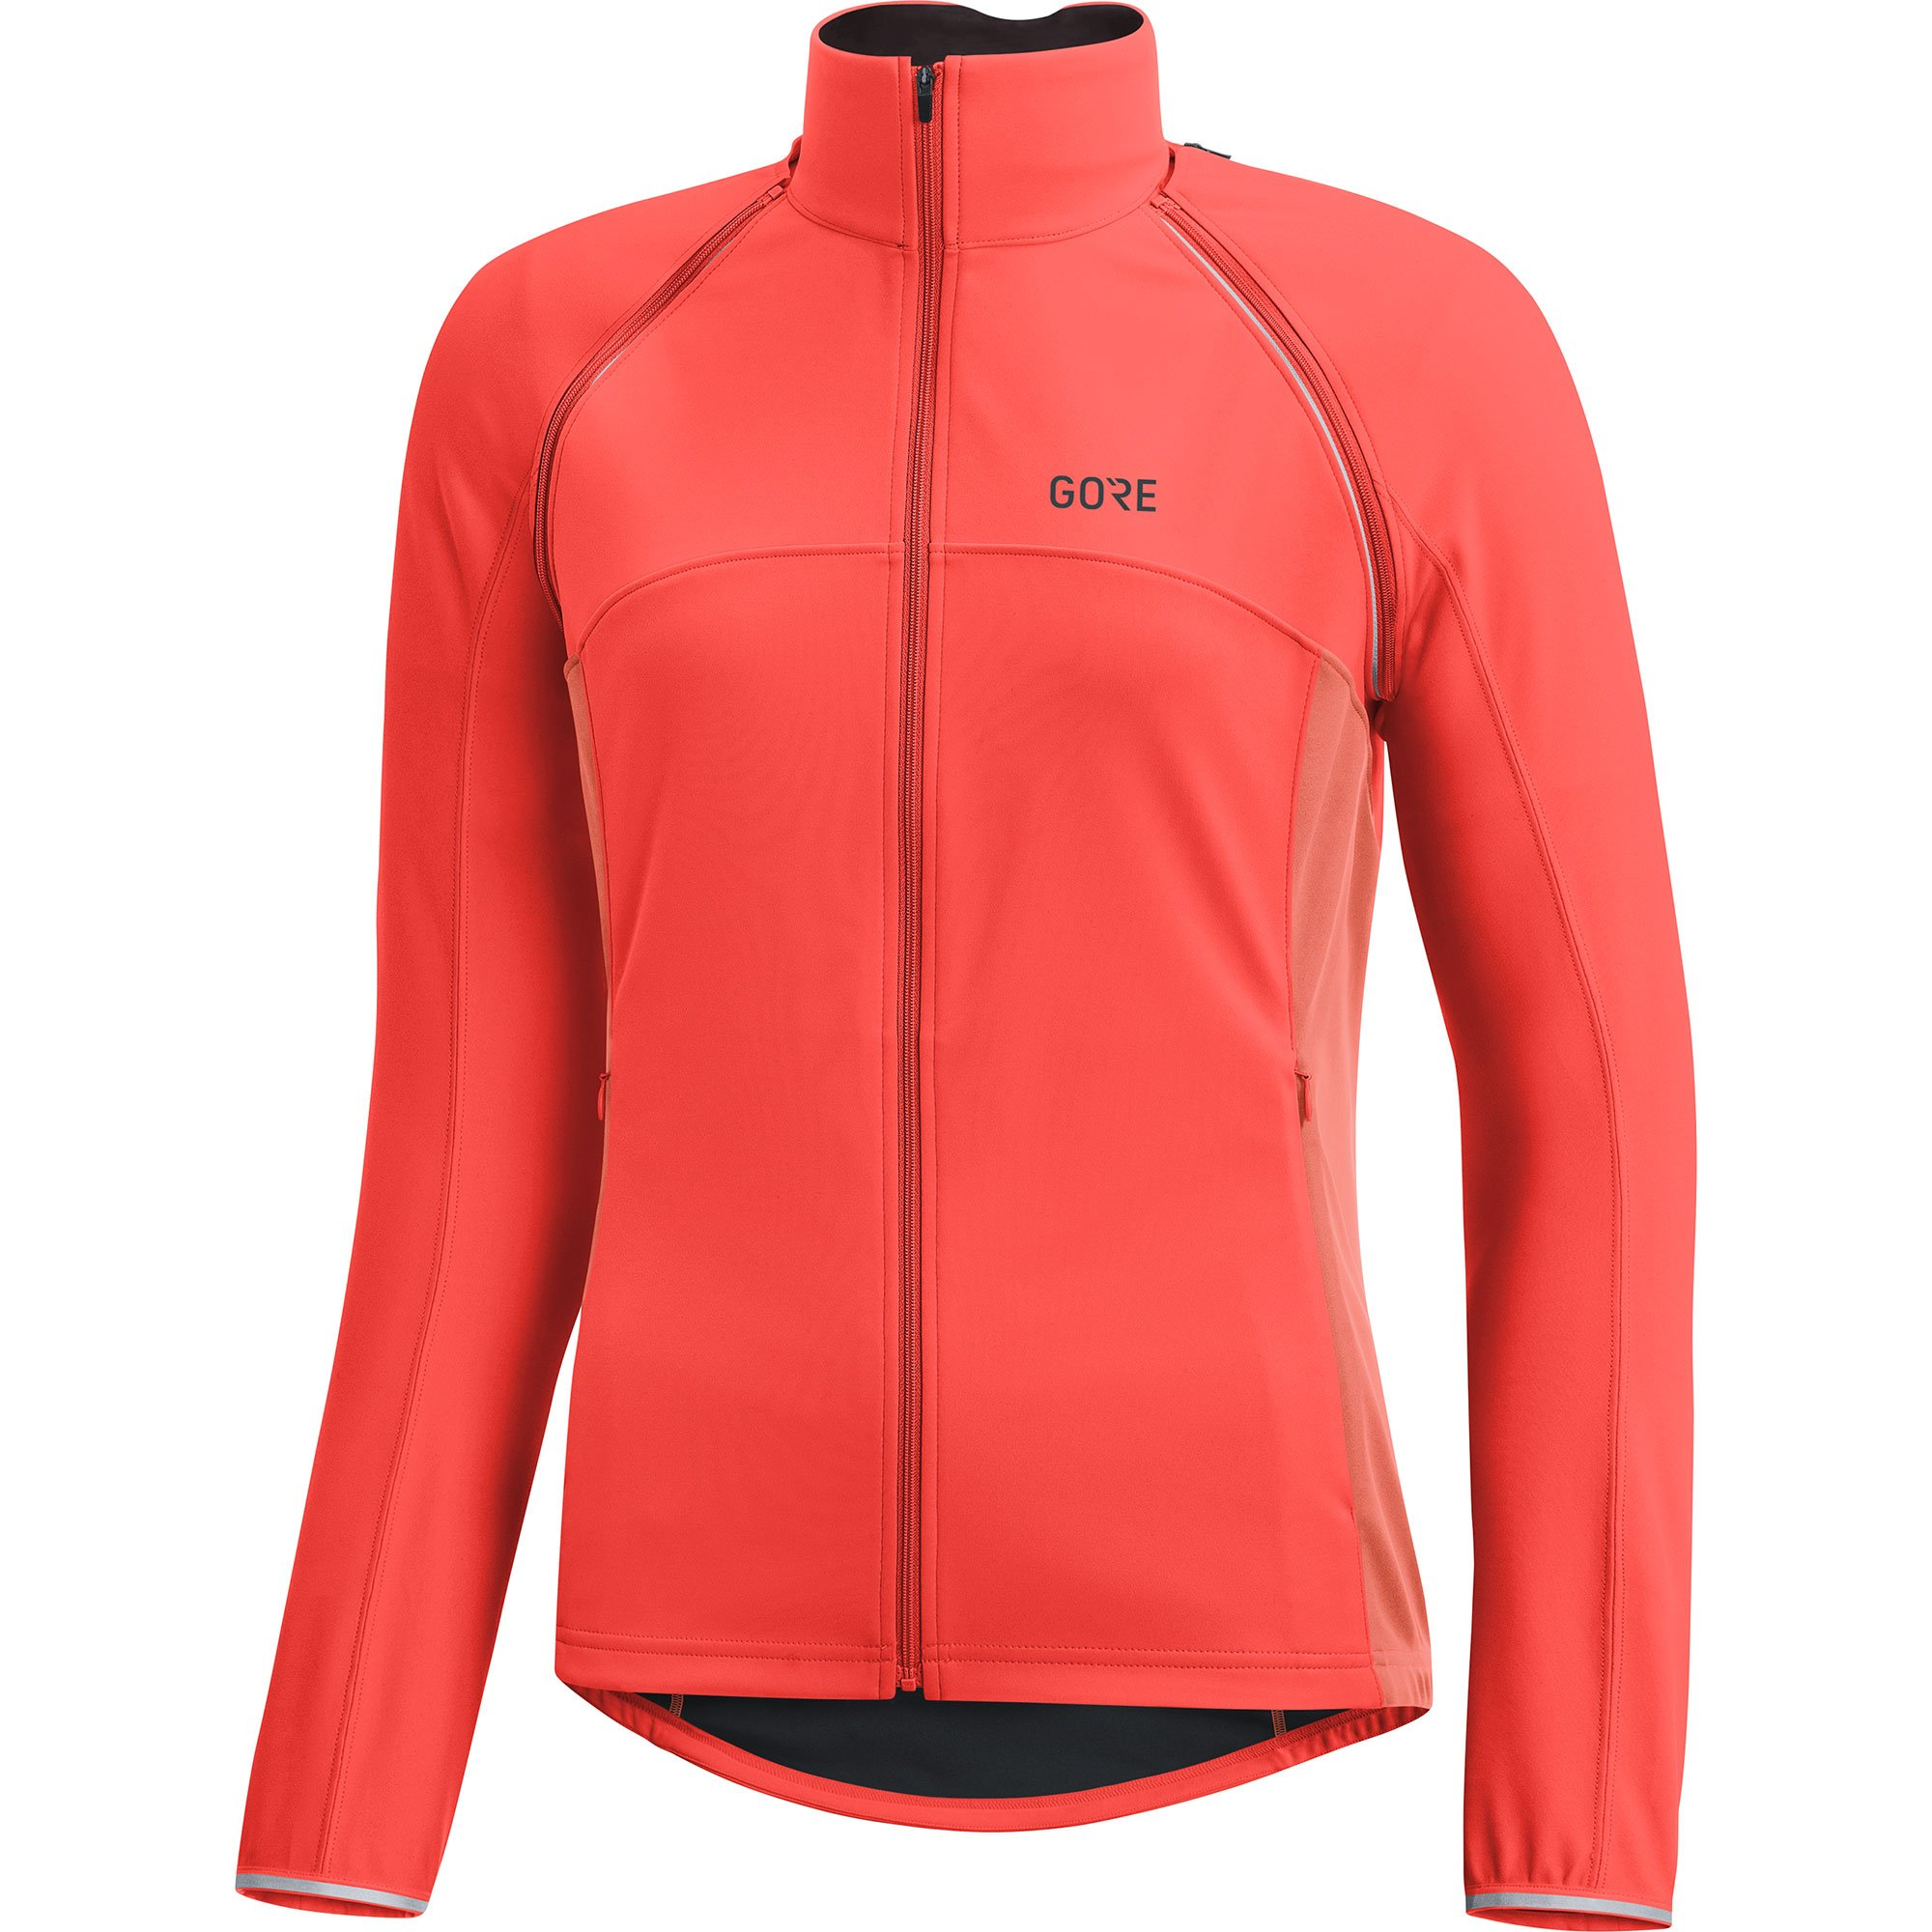 GORE Wear Women's Windproof Cycling Jacket, Removable Sleeves, GORE Wear C3 Women's GORE Wear WINDSTOPPER Phantom Zip-Off Jacket, Size: L, Color: Lumi Orange/Coral Glow, 100191